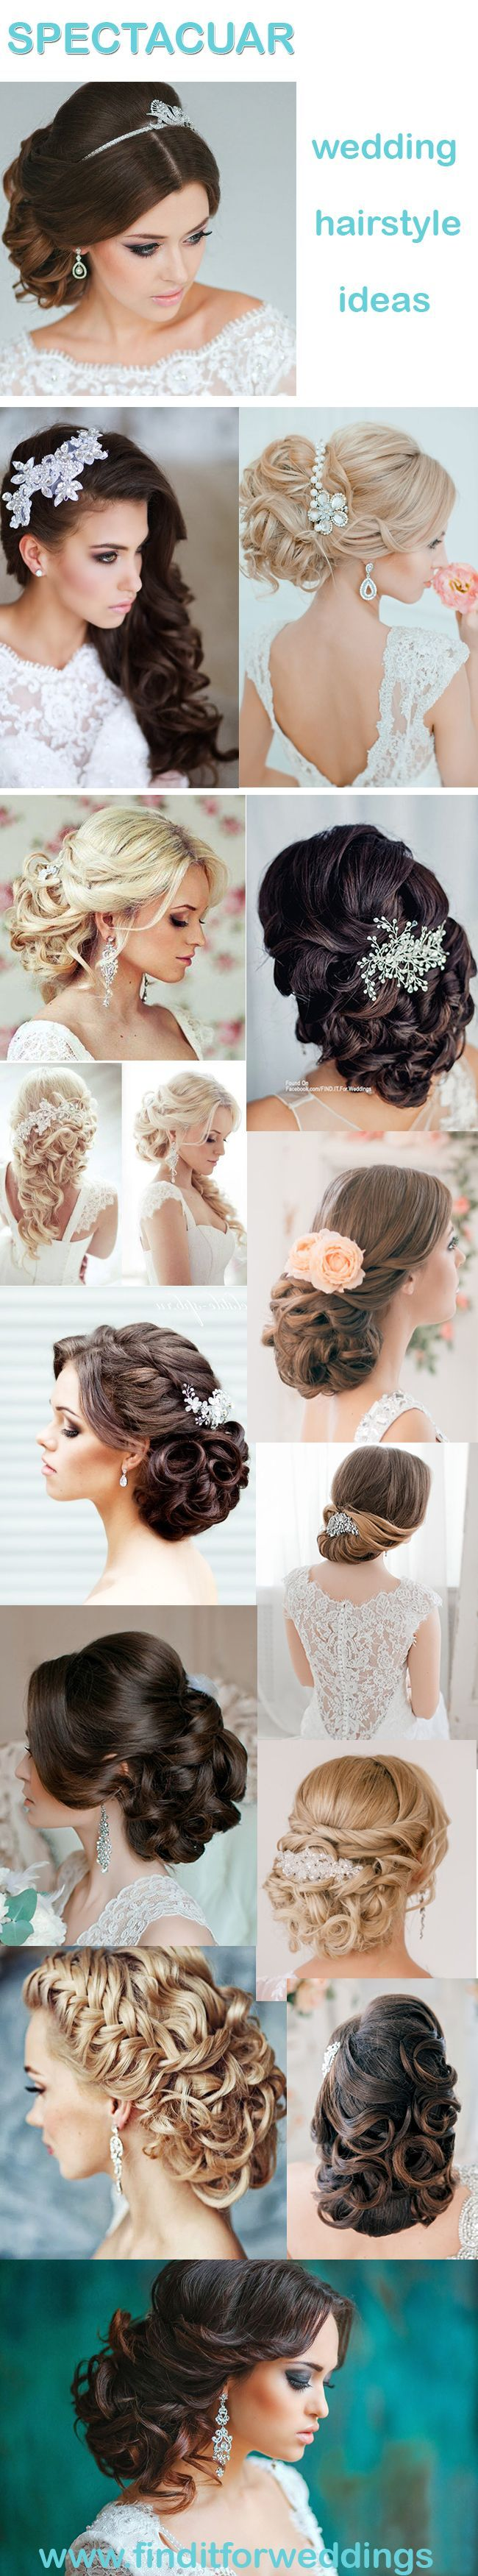 Stunning wedding hairstyles for every bride wedding exotic hair